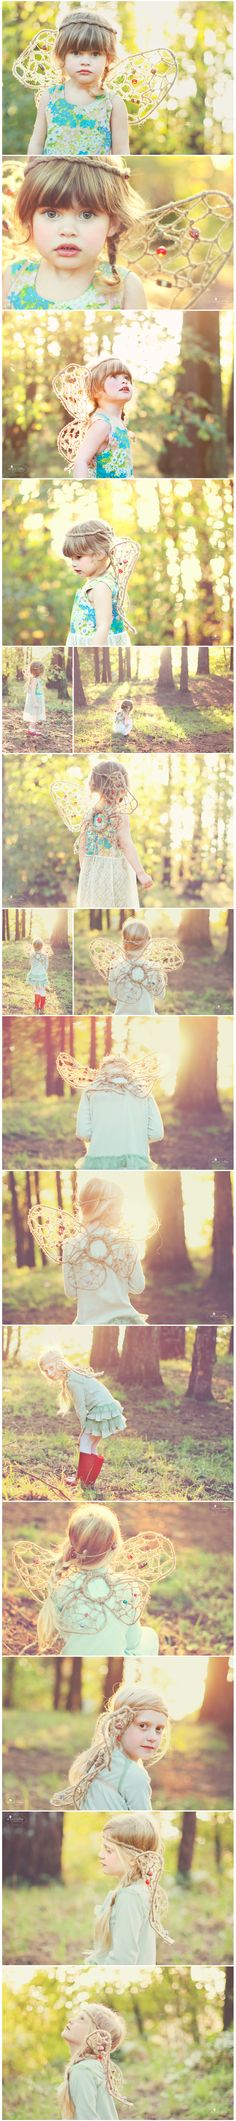 One day, I will dress my daughter up as a fairy and make her do things like this. :)